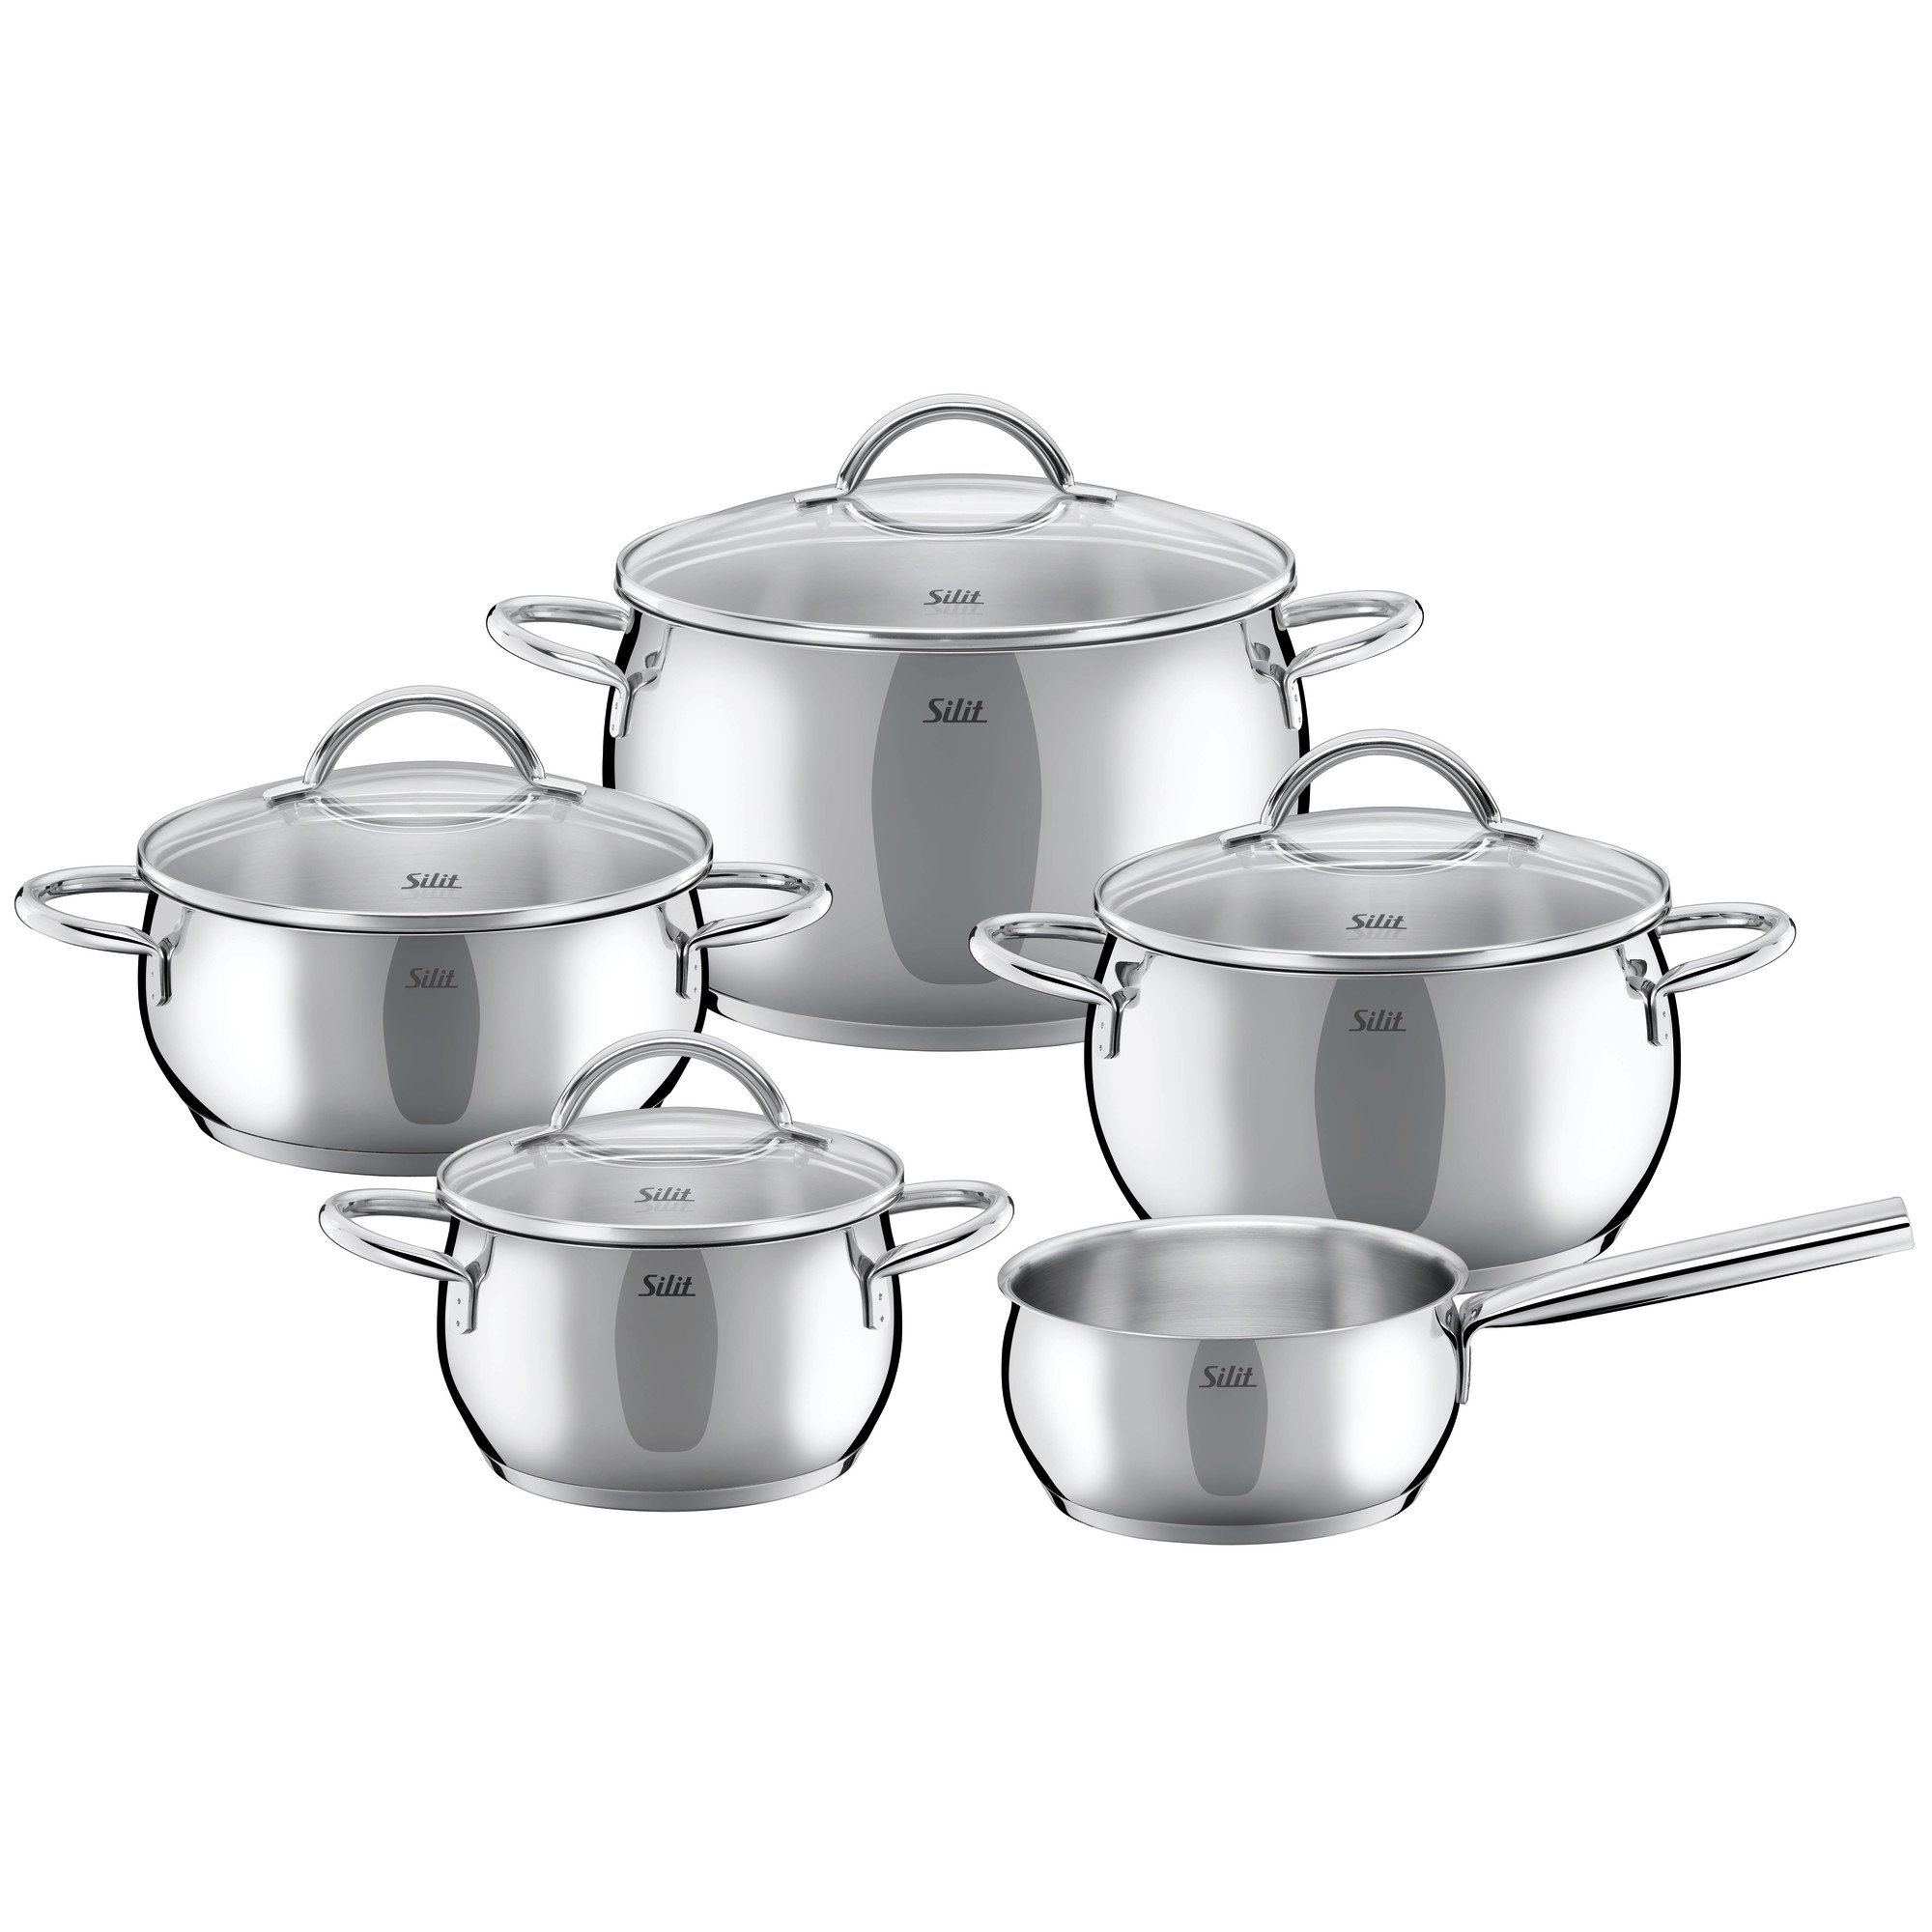 Silit Nobile 7-Piece 18/10 Stainless Steel  Cookware Set, Silver